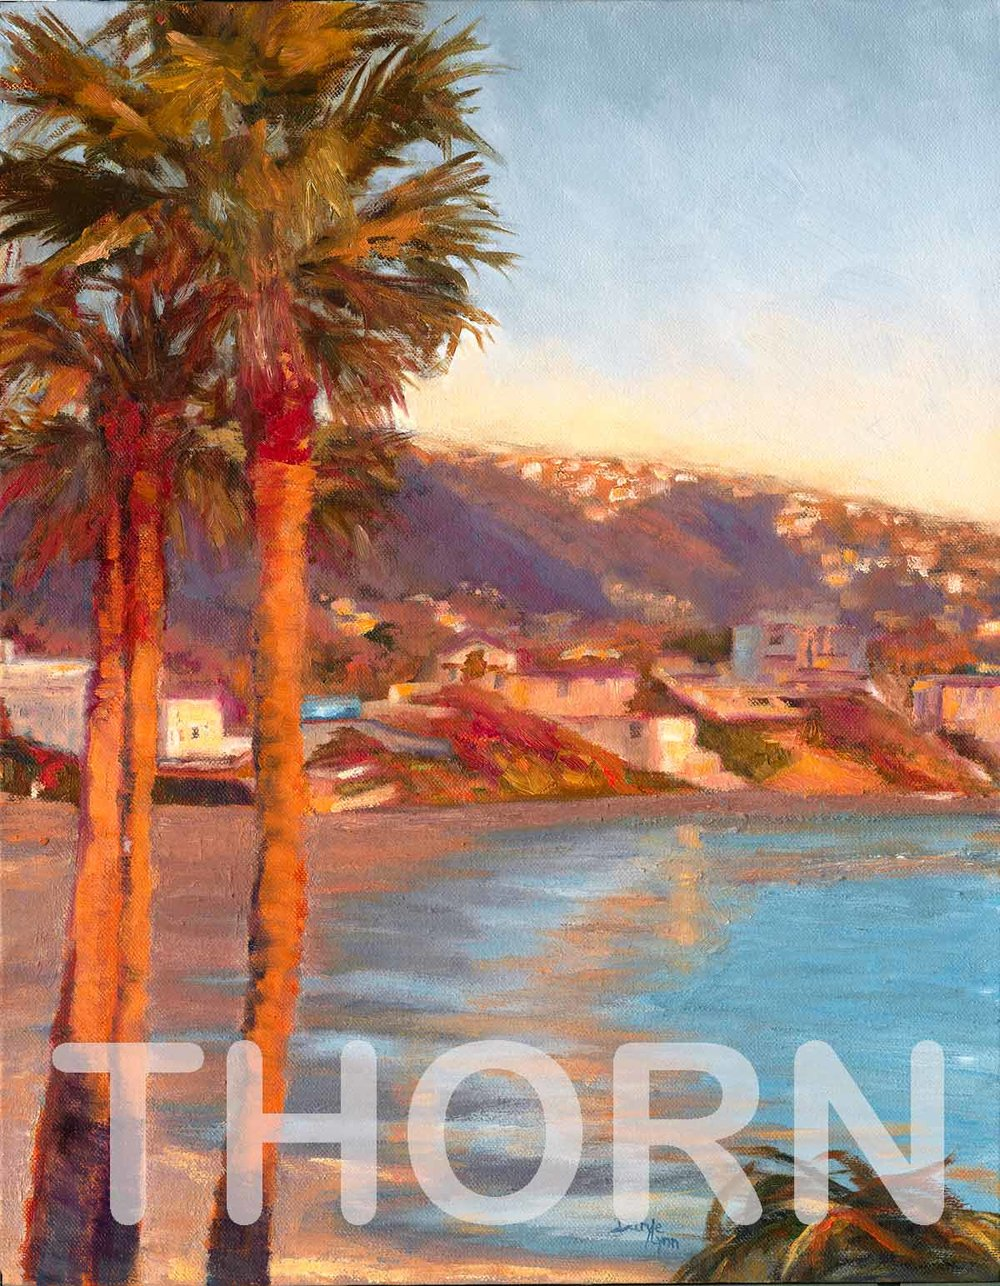 """DESTINATION LAGUNA    Click on image for size and material options.   Prints Available from $27 - $310  Authentic Oil 14""""w x 18""""h  Original Art Sold  2011  Artist: Daryle Lynn Cornelison"""